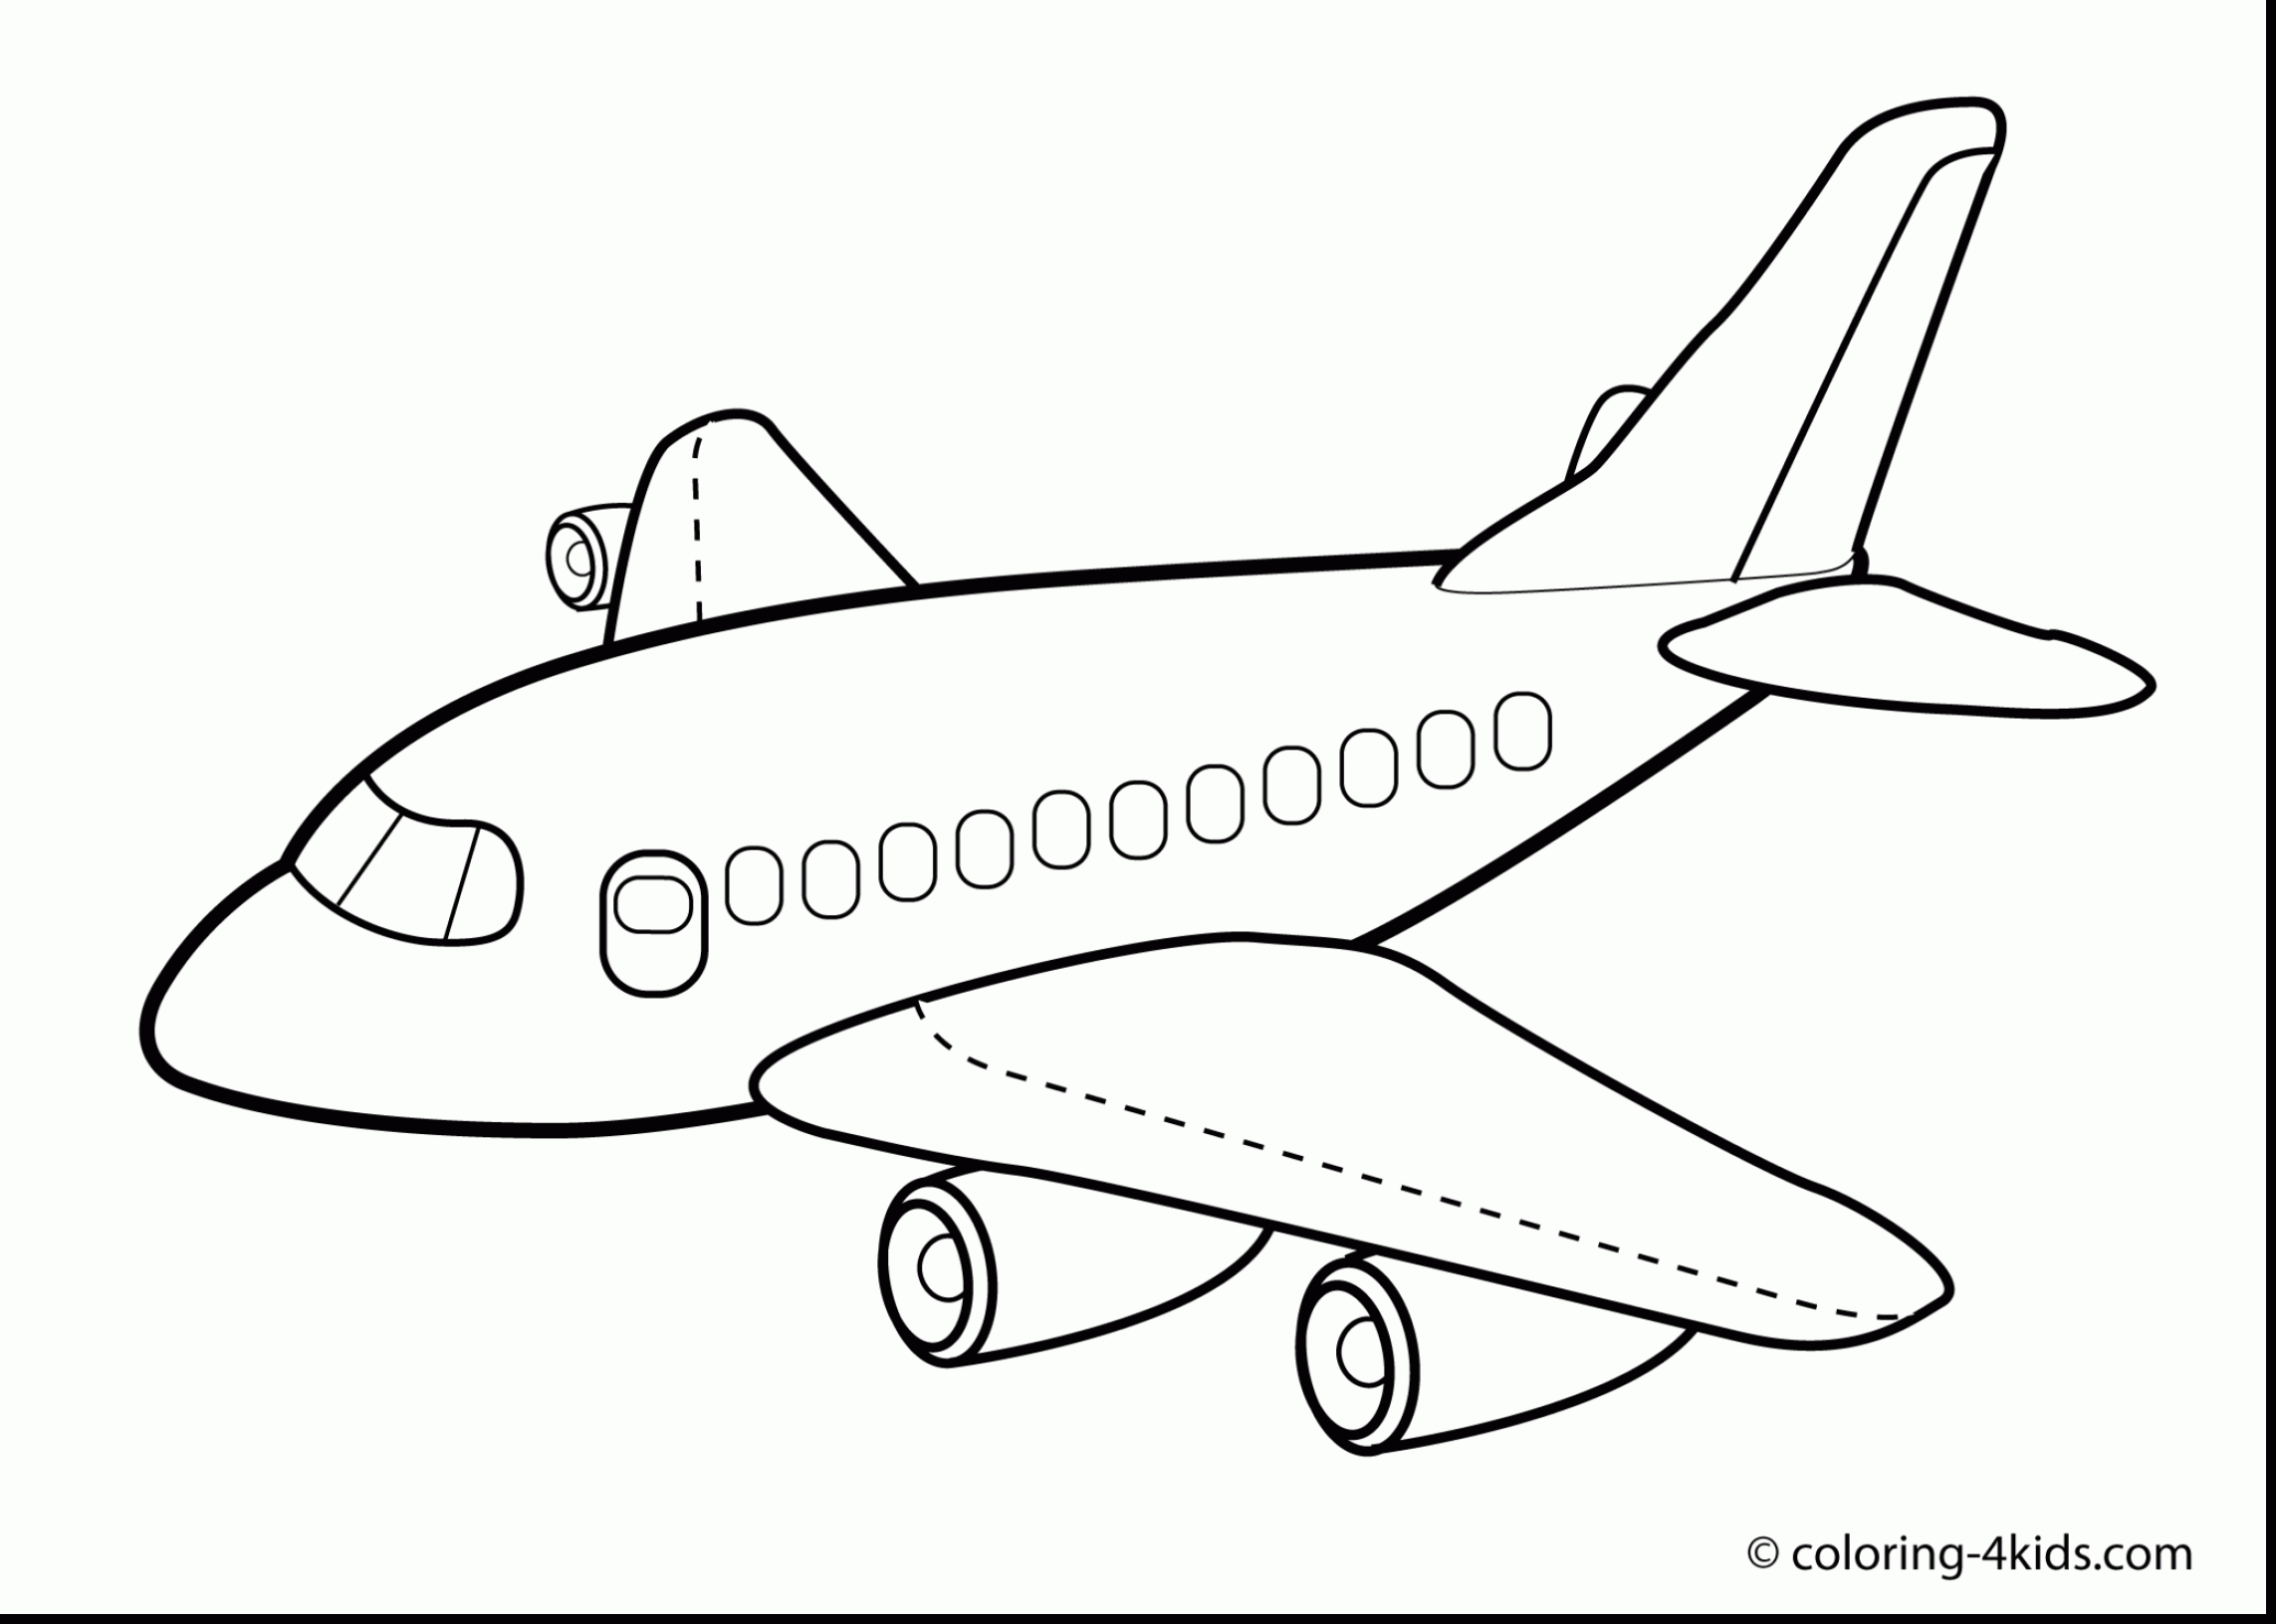 2286x1631 Fresh Airplane Coloring Pages To Print Gallery Free Coloring Pages